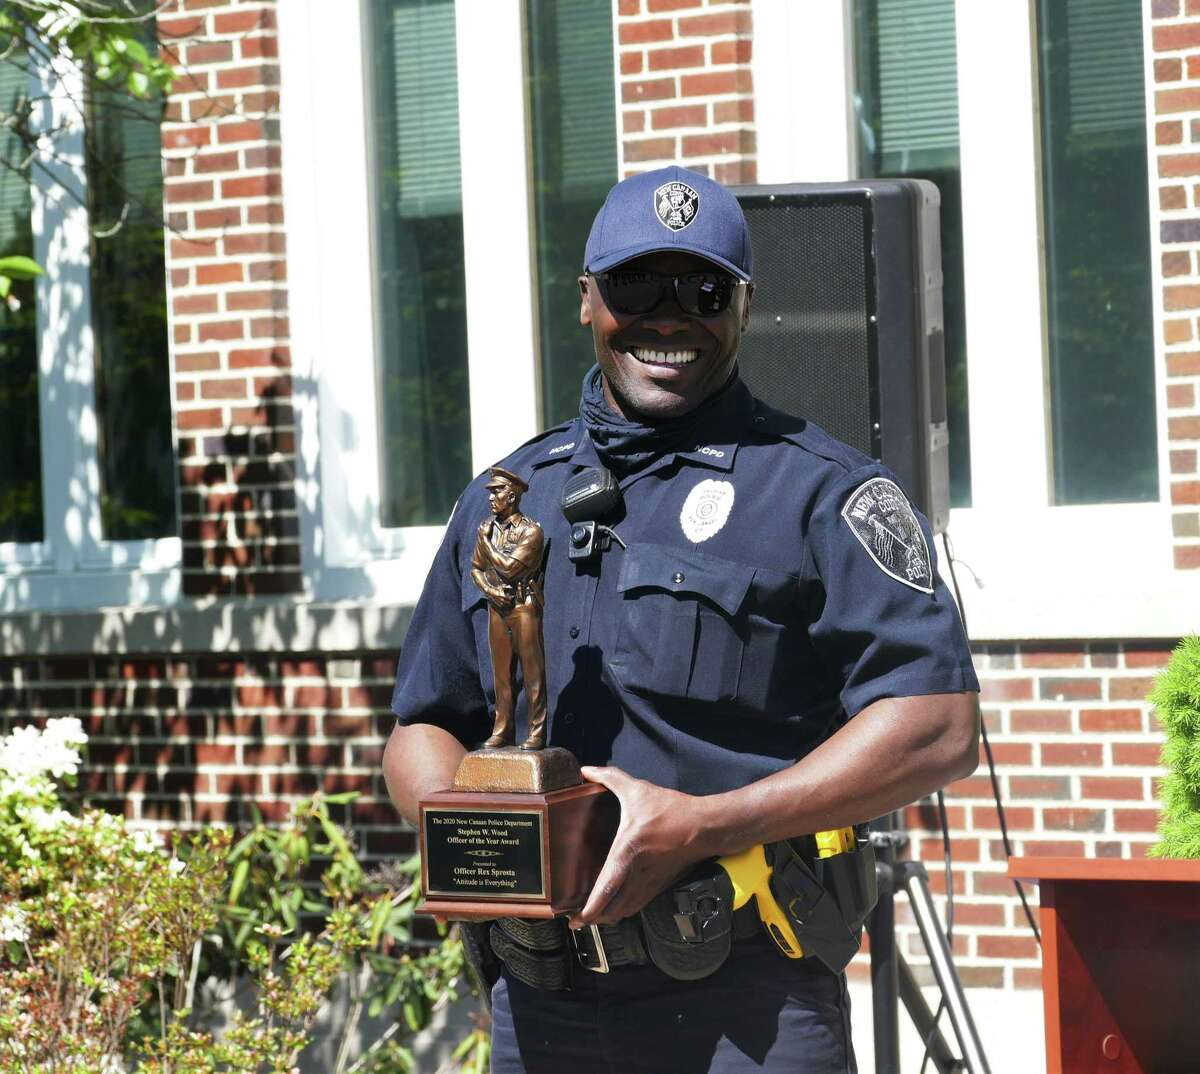 Officer Rex Sprosta was named as the 2020 Stephen W. Wood Officer of the Year for the New Canaan Police Department for his commitment to the community.